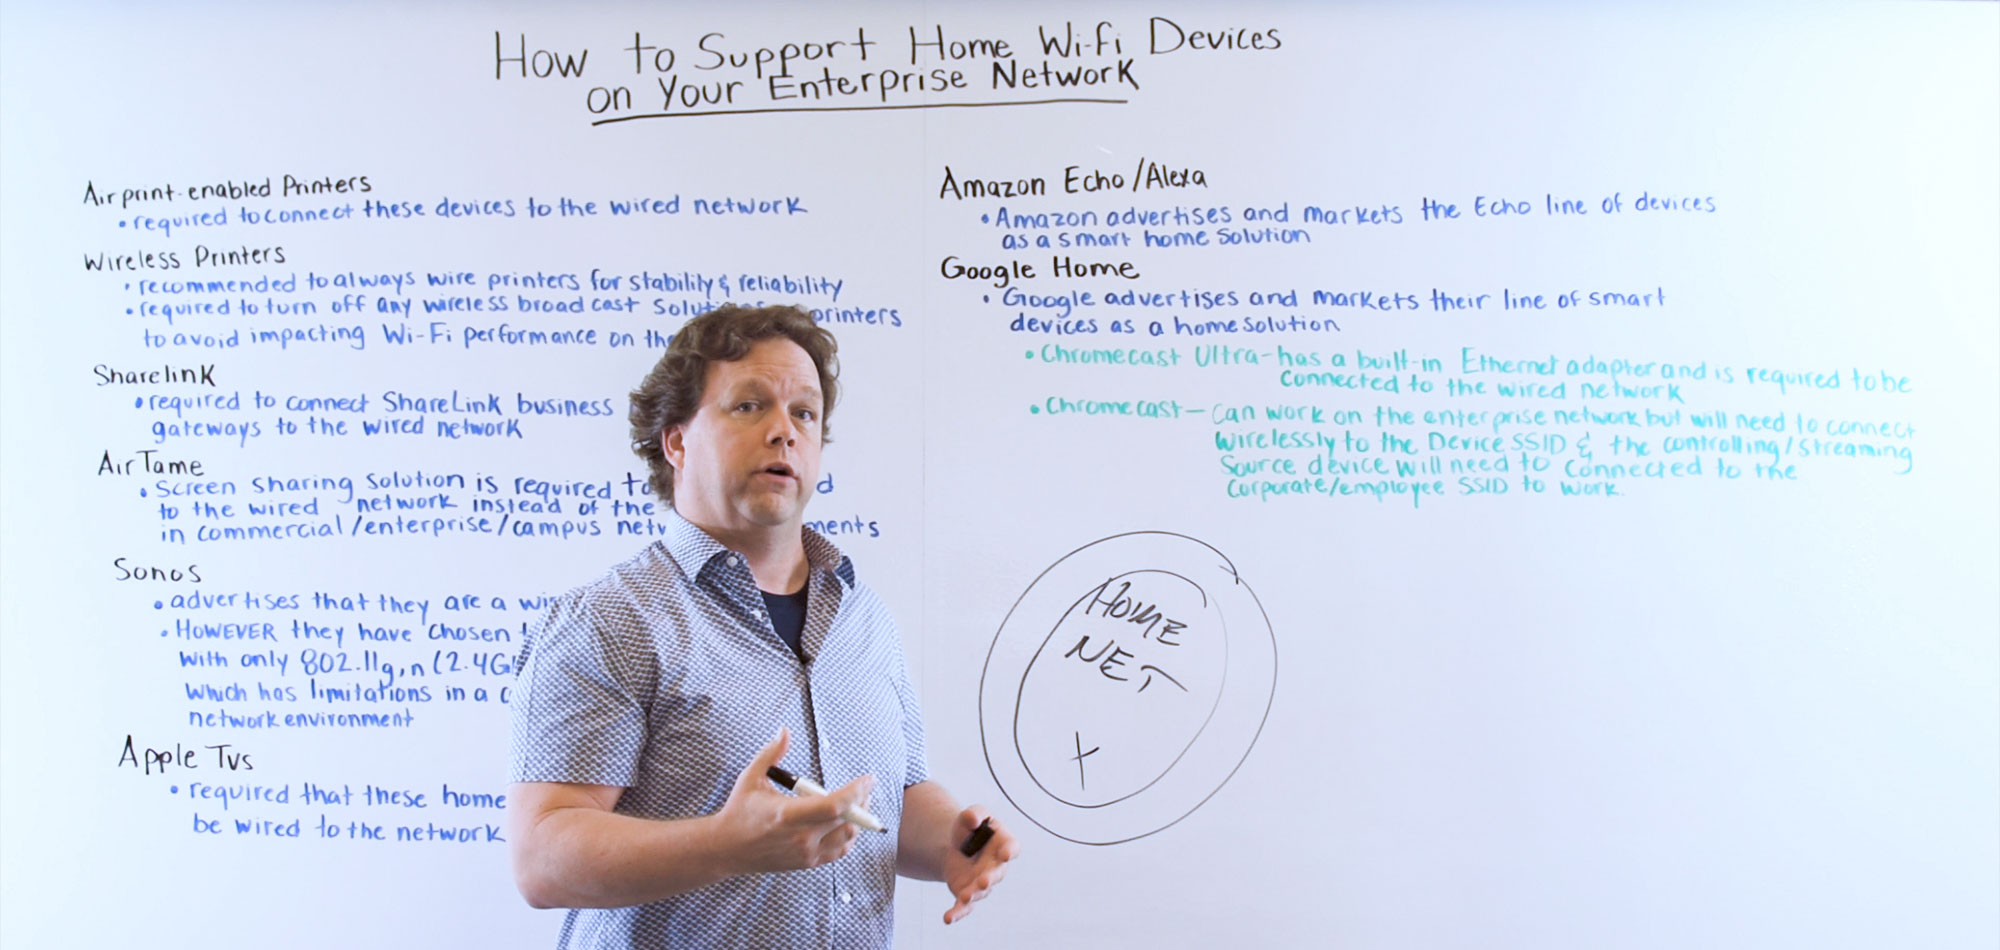 How to Support Home WiFi Devices on Your Enterprise Network